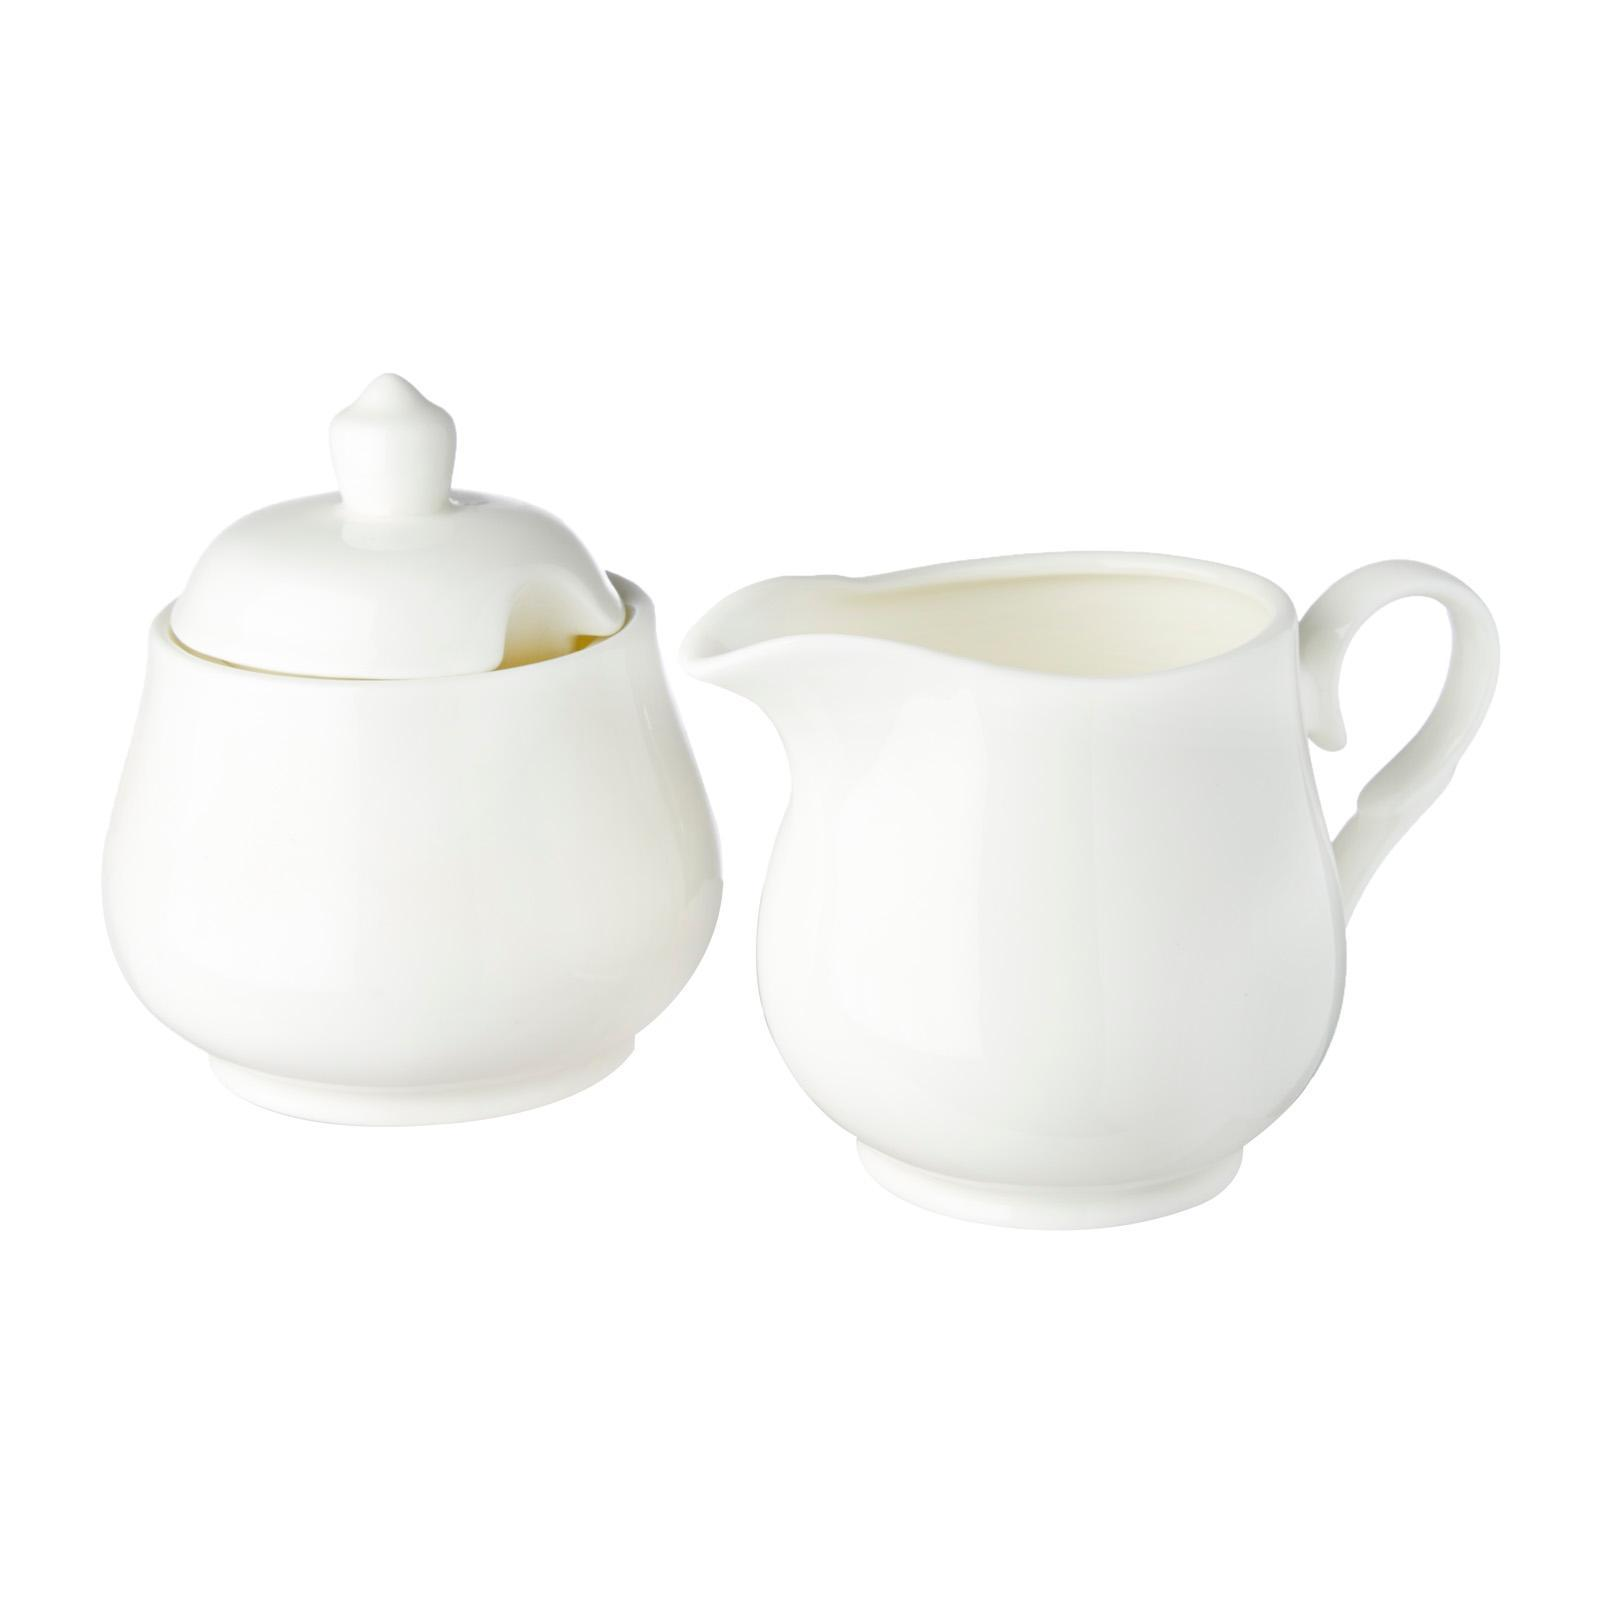 Wilmax England Sugar Bowl And Creamer 2 Pcs Set